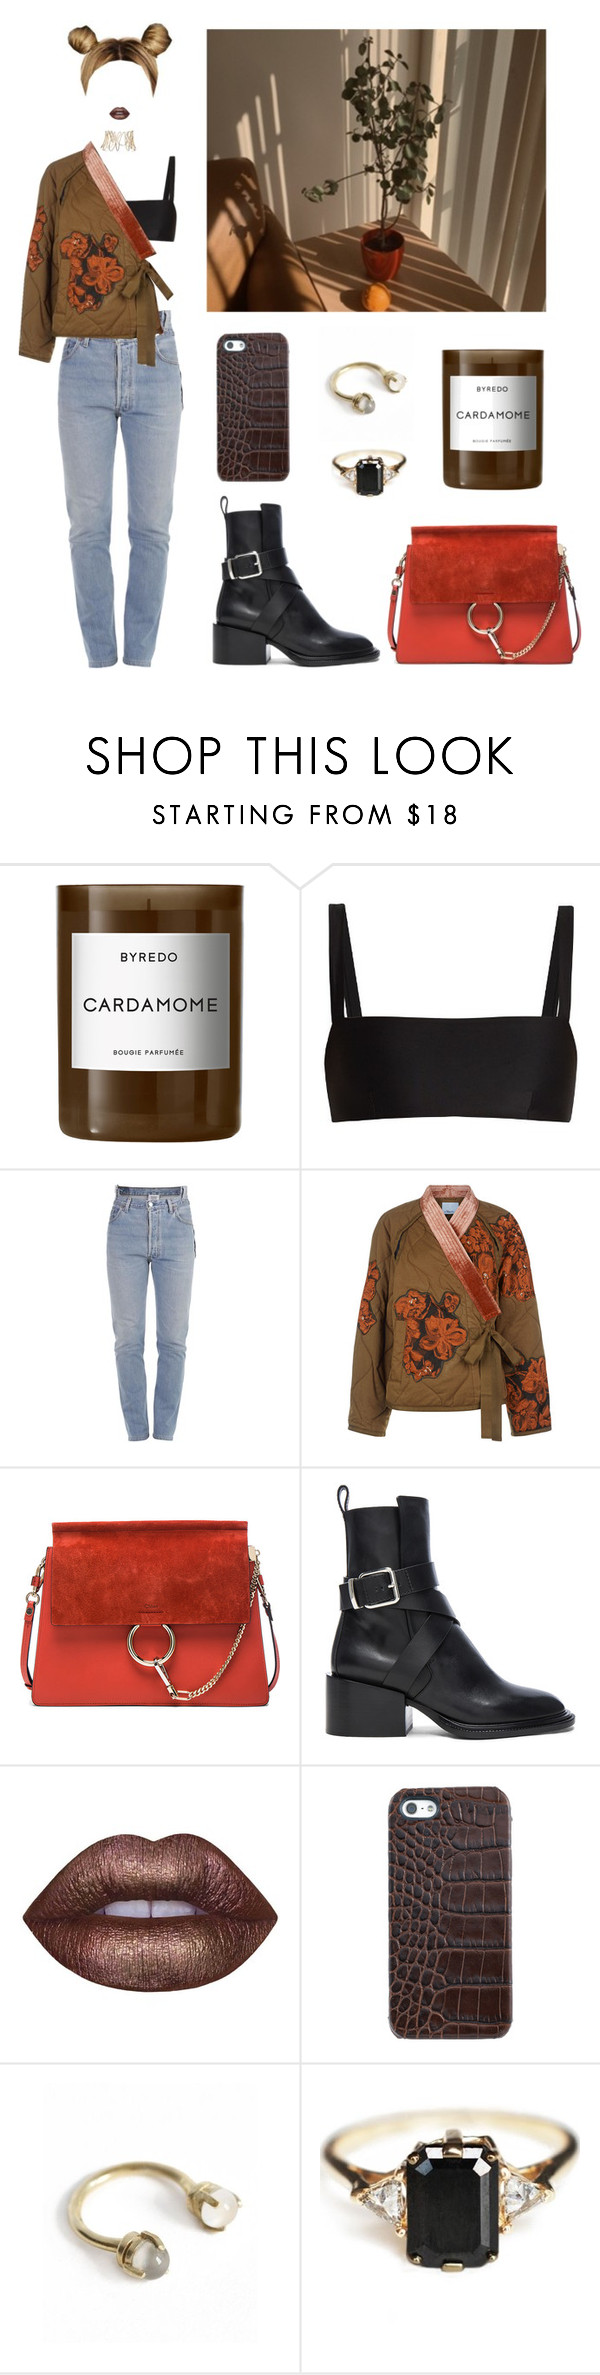 """""""take it off"""" by sarahloup ❤ liked on Polyvore featuring Byredo, Matteau, Vetements, 3.1 Phillip Lim, Repossi, Chloé, Jil Sander, Lime Crime, Graphic Image and Aesa"""